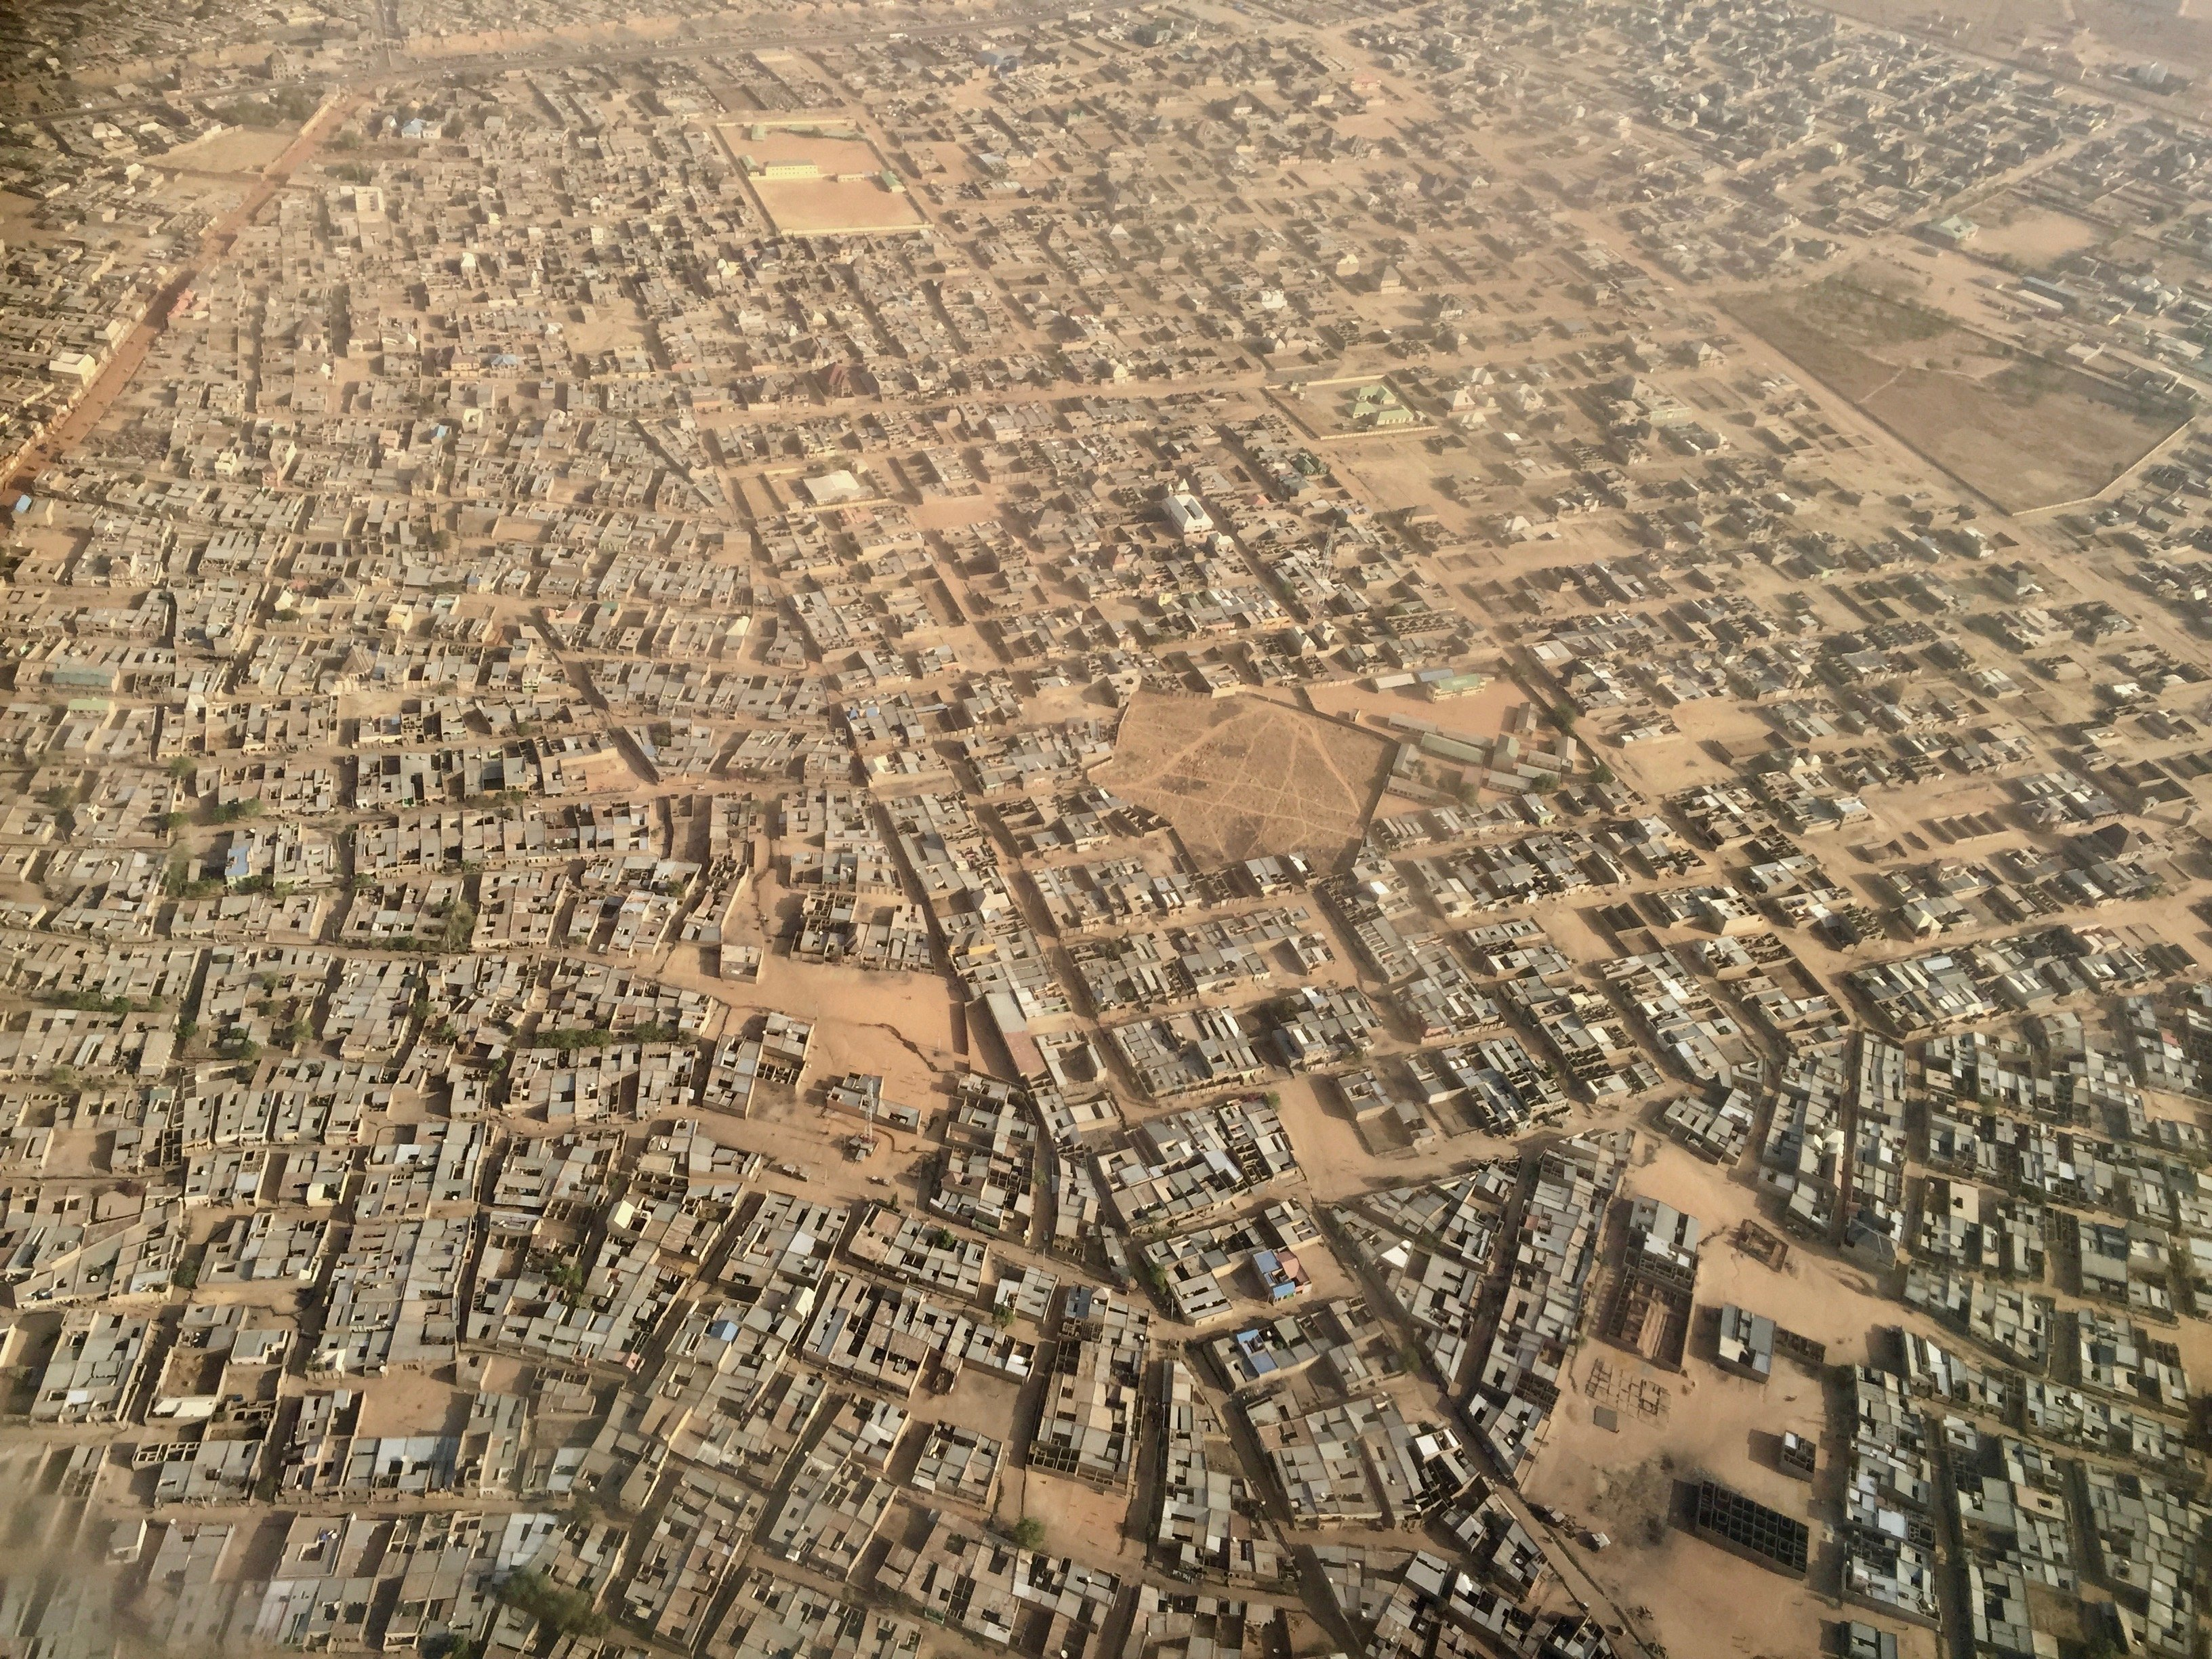 Kano vue d'avion